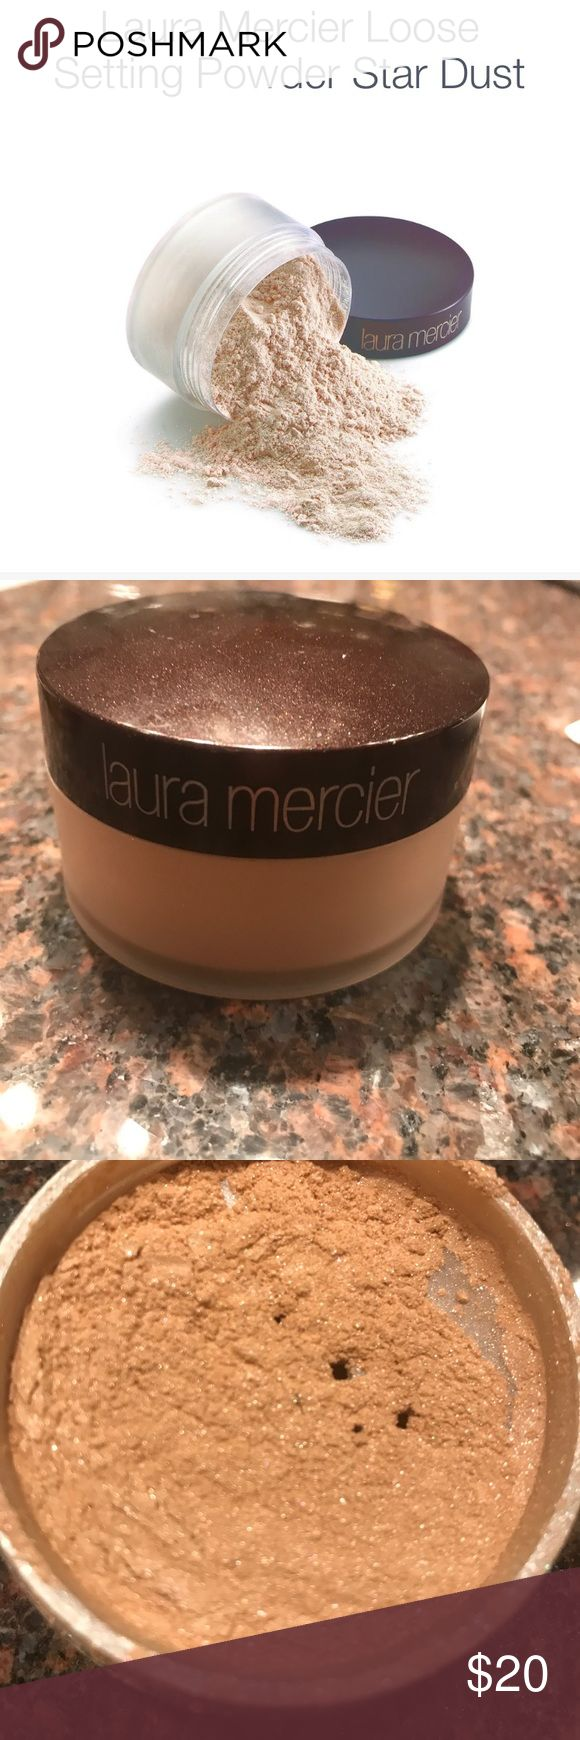 Beautiful highlighter Laura mercier loose setting powder in star dust. Only used once. Great highlighter or all over powder! Laura Mercier Makeup Luminizer